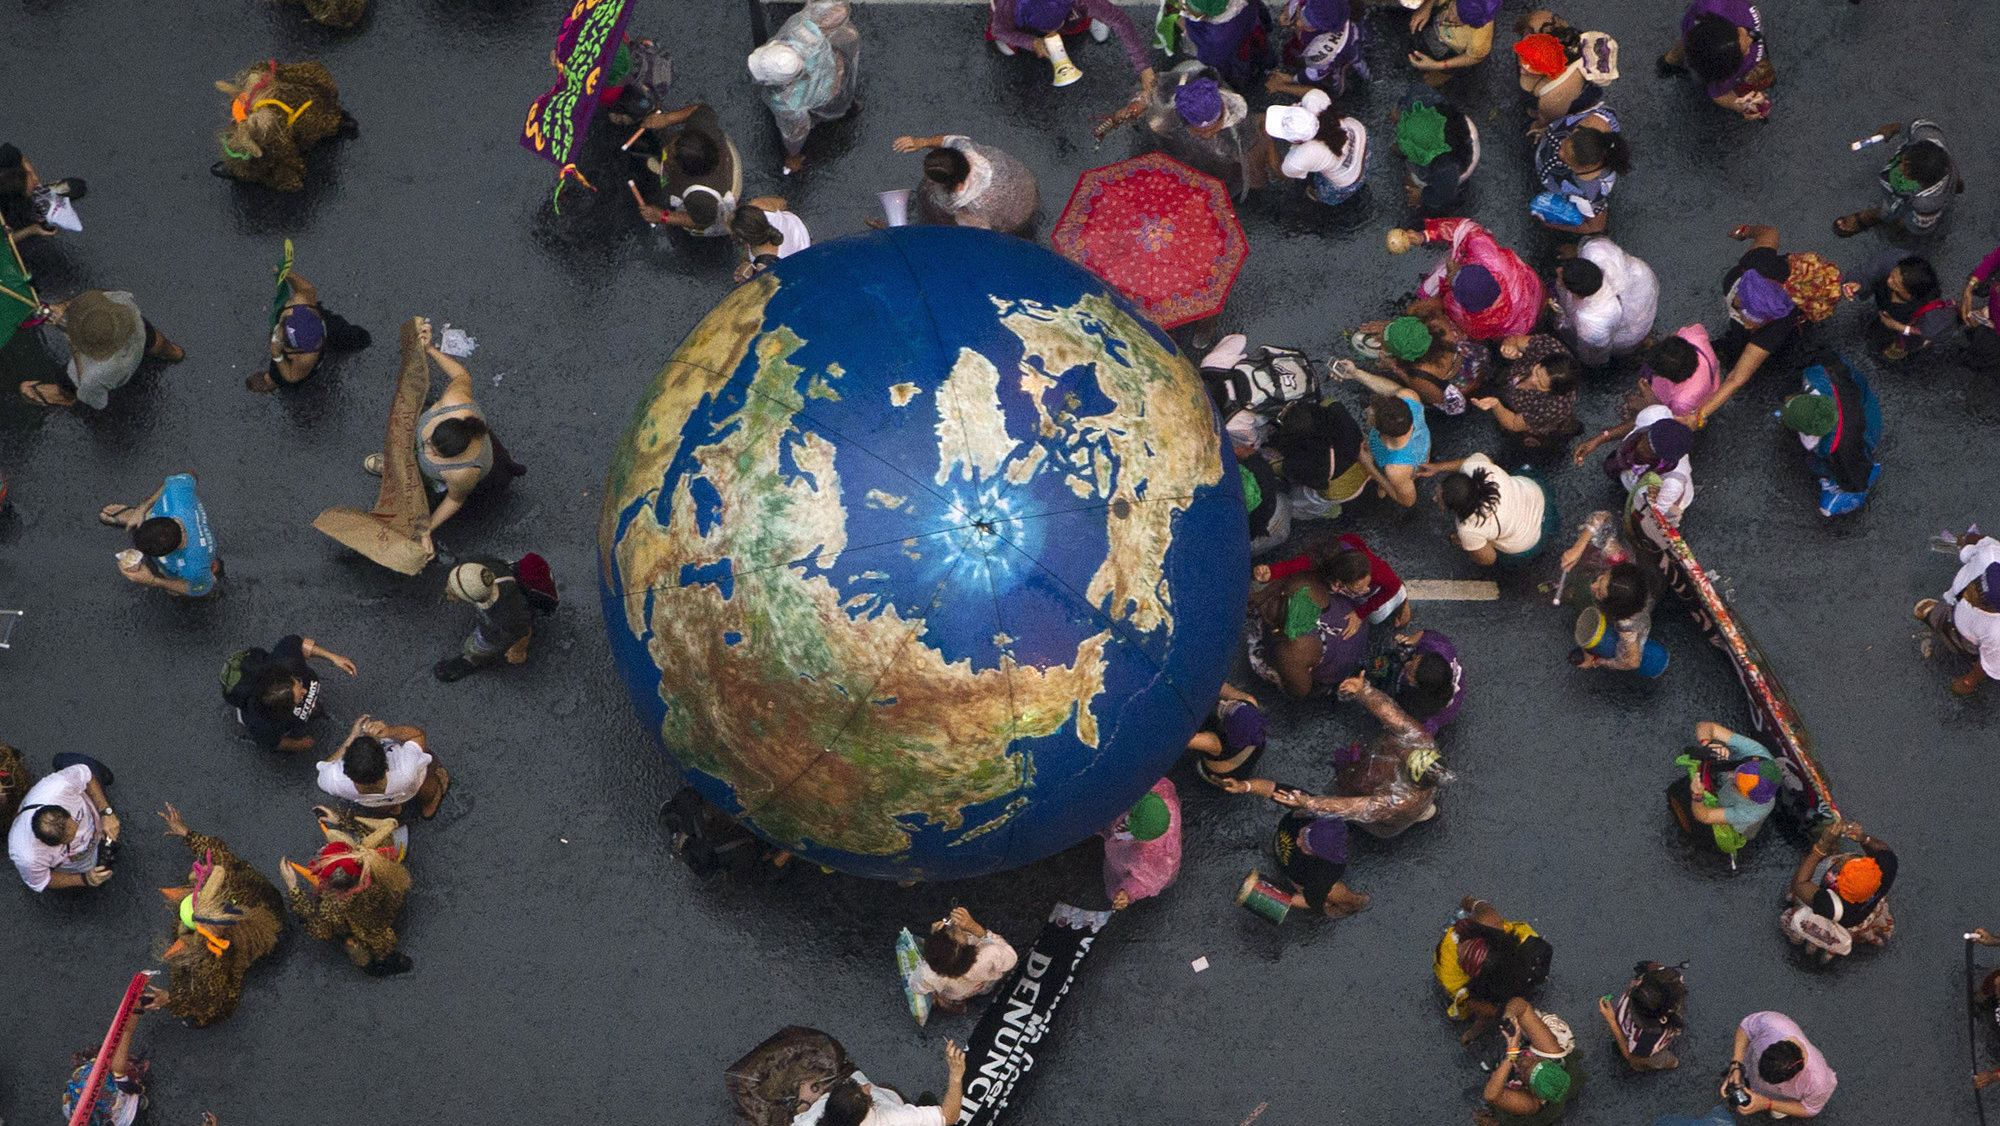 """Activists push an inflatable globe during a """"Global March"""" as part of the People's Summit for Social and Environmental Justice in Defense of the Commons, a parallel event during the UN Conference on Sustainable Development, or Rio+20, in Rio de Janeiro, Brazil, Wednesday, June 20, 2012."""